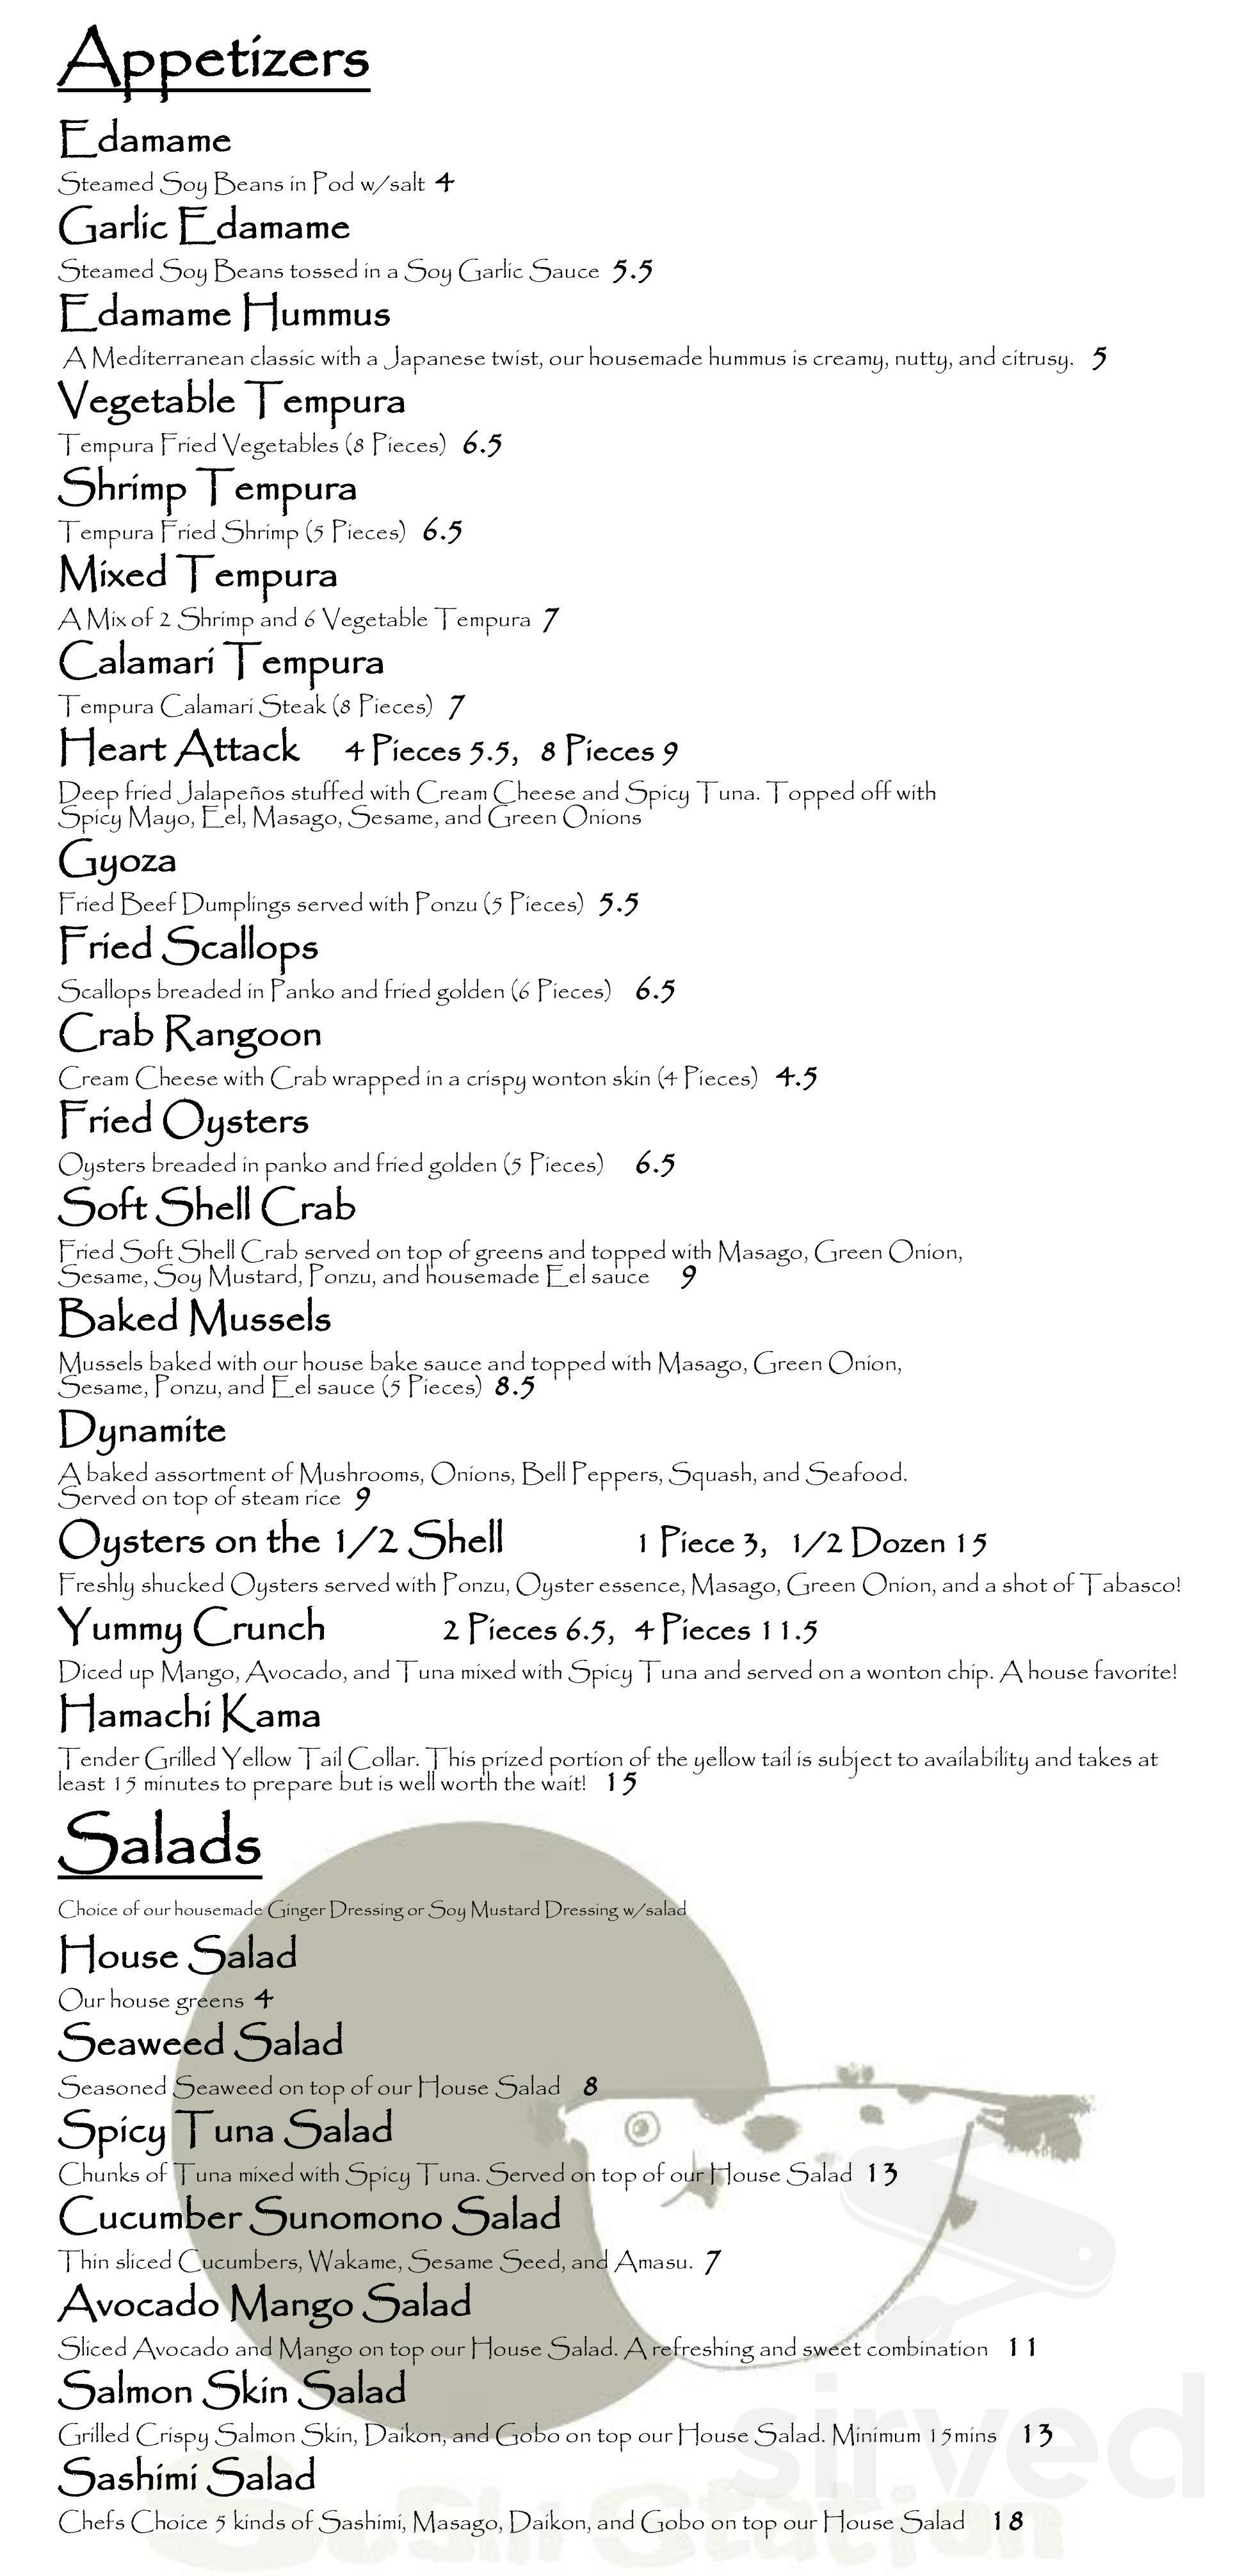 Sushi Station Menu In Riverside California Usa Sushi station brings the freshest and highest quality sushi at a reasonable price. sushi station menu in riverside